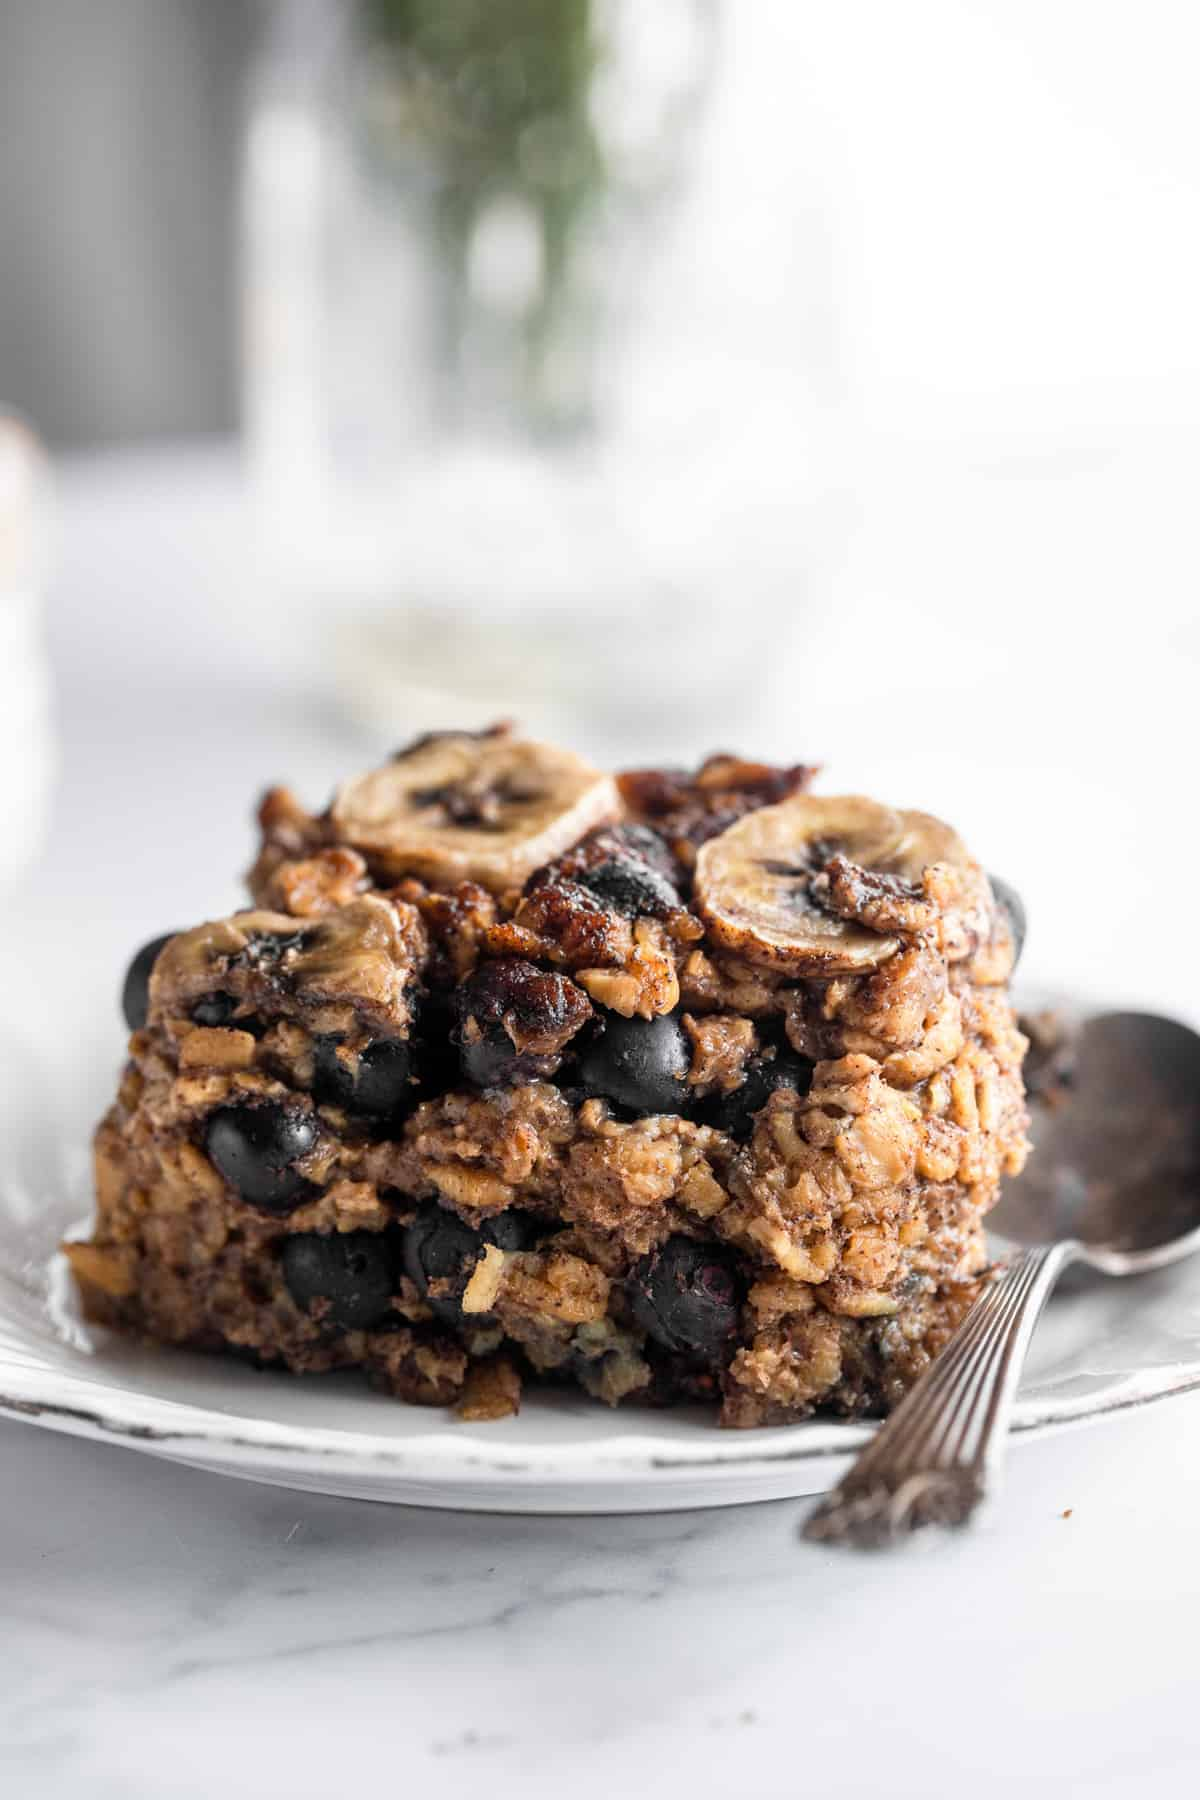 Blueberry Banana Baked Oatmeal on a small plate with a spoon